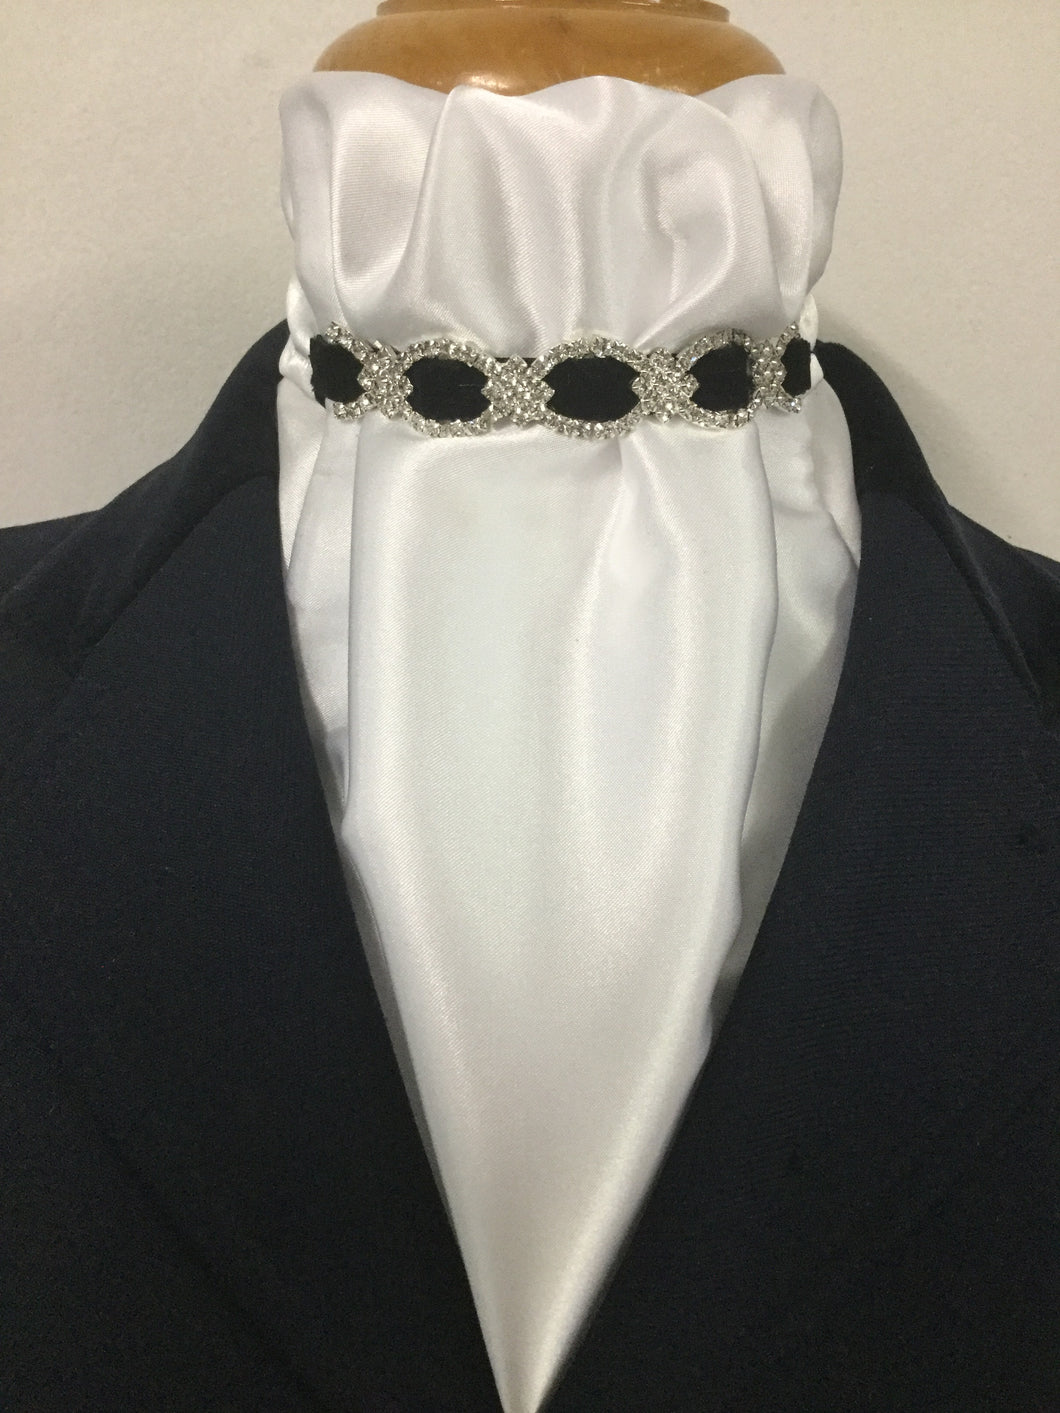 HHD White Satin Euro Stock Tie 'ALICE' Black or Navy with Rhinestones